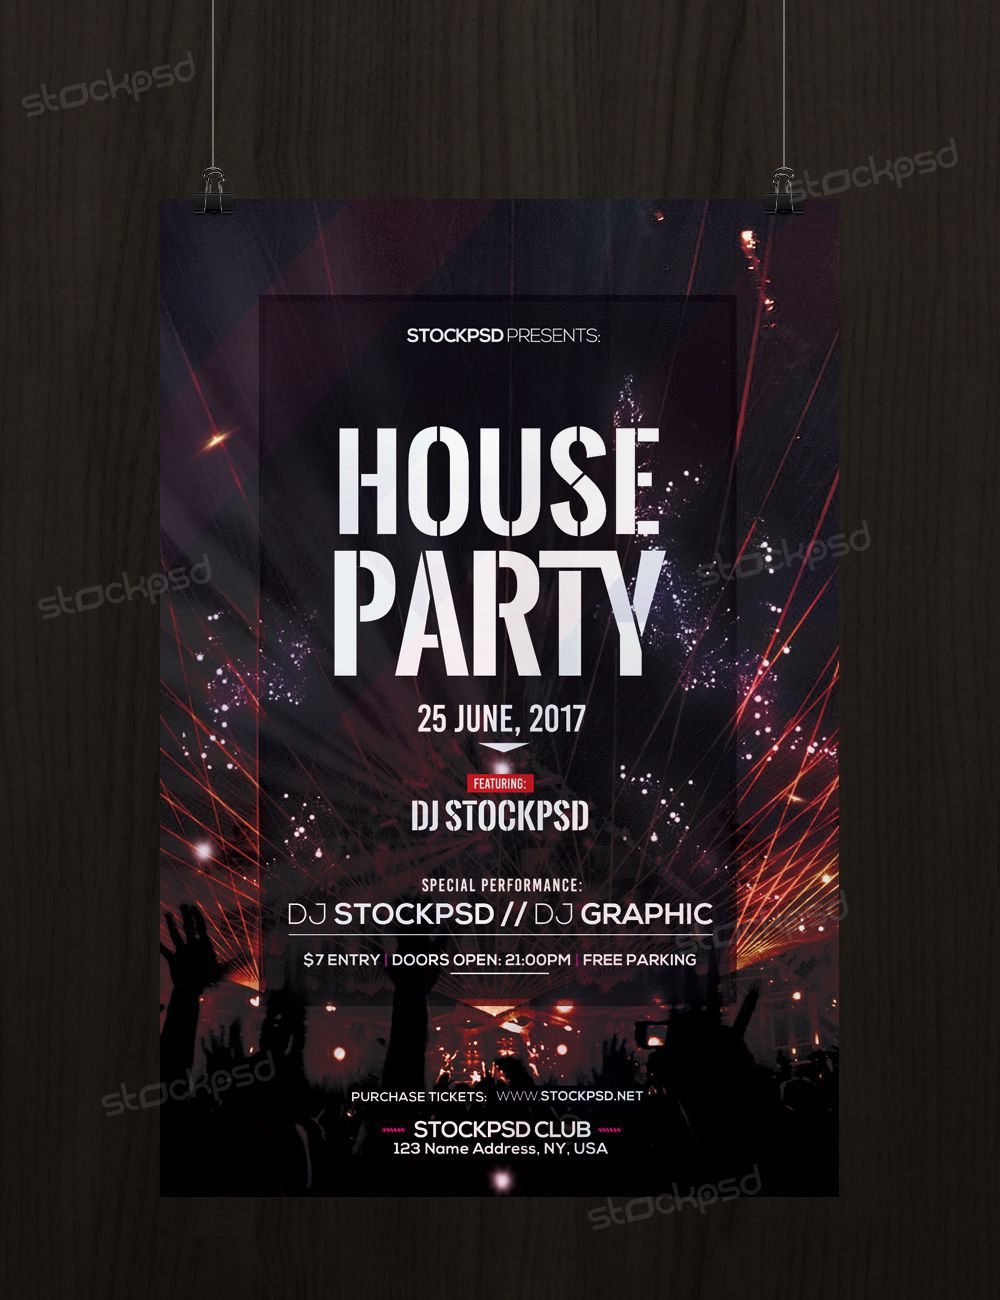 003 Rare Free Party Flyer Psd Template Download High Resolution  - Neon GlowFull